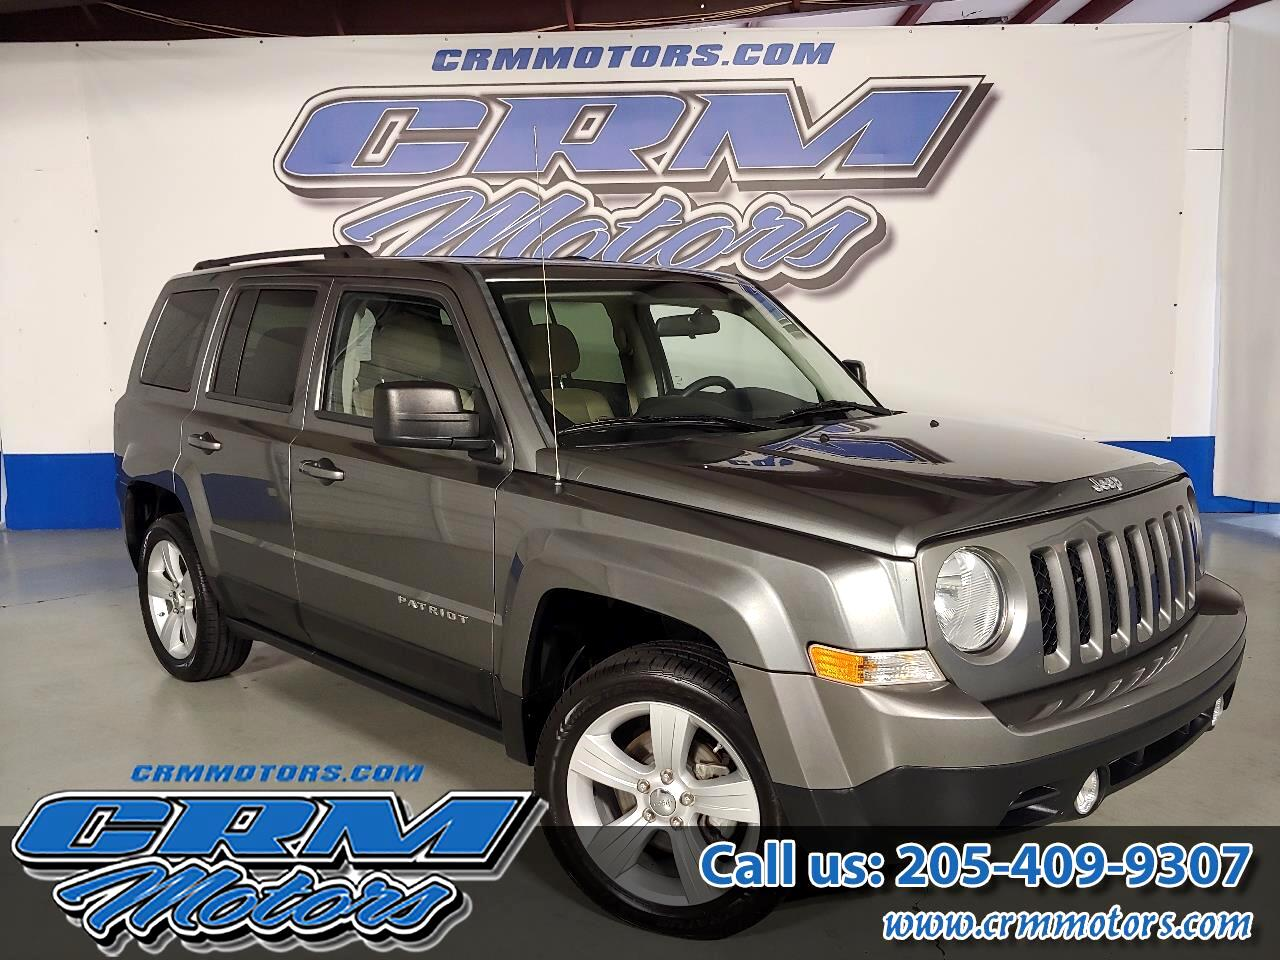 2012 Jeep Patriot FWD 4dr Latitude